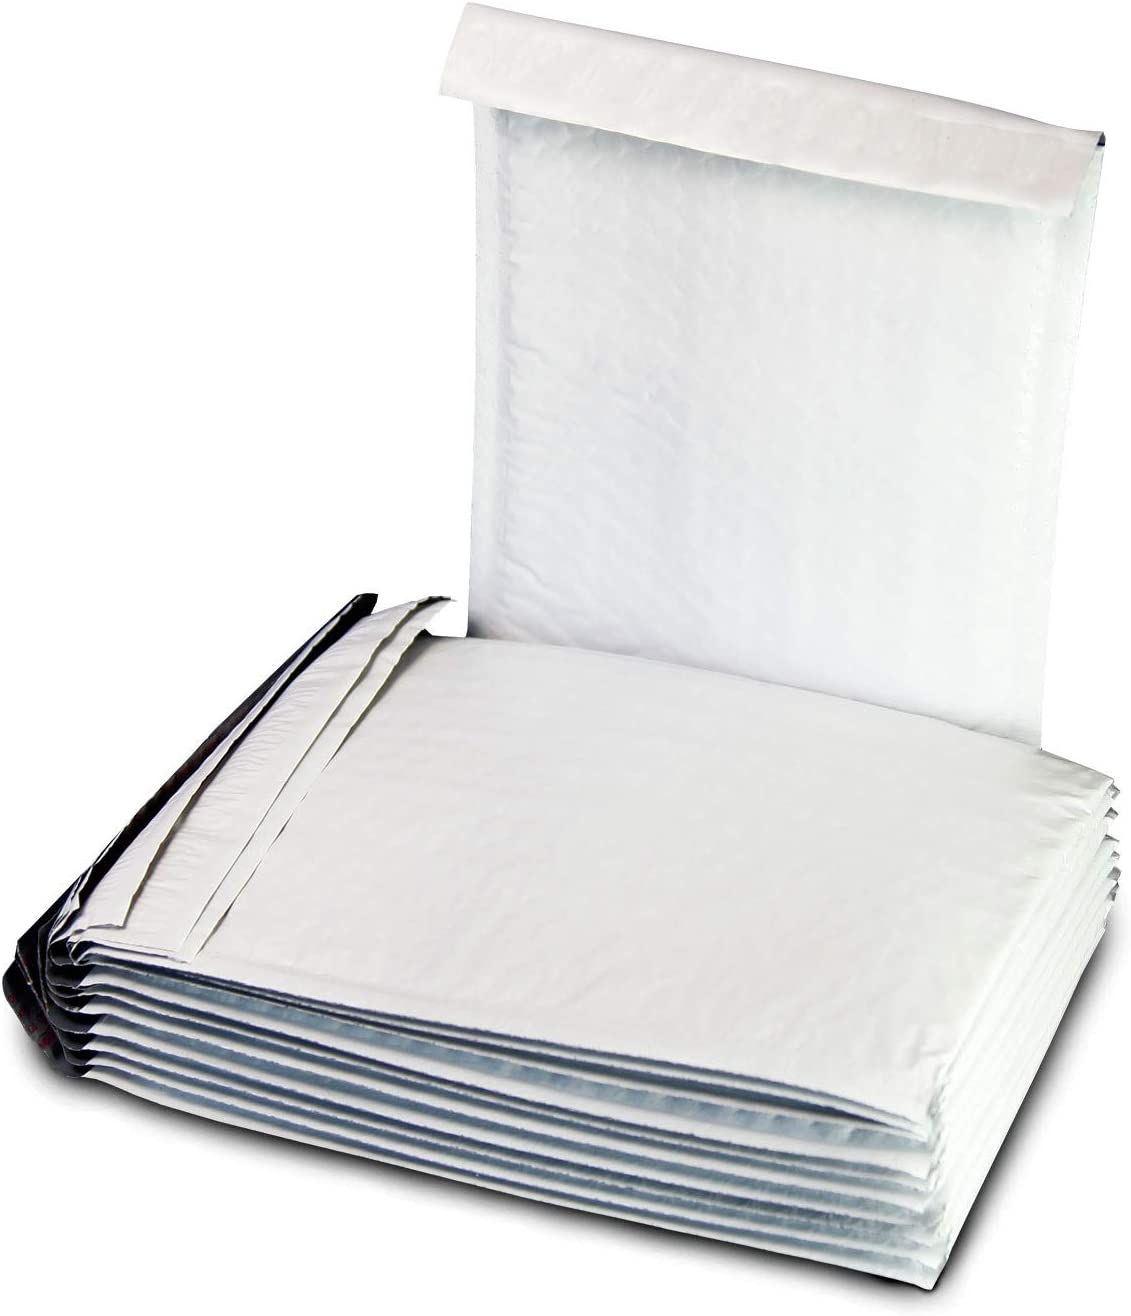 Water-Resistant and Postage-Saving Lightweight Purple, 300 Pack Forlei #000 4 x 8 Premium Color Self Seal Poly Bubble Mailers Padded Shipping Envelopes Tear-Proof